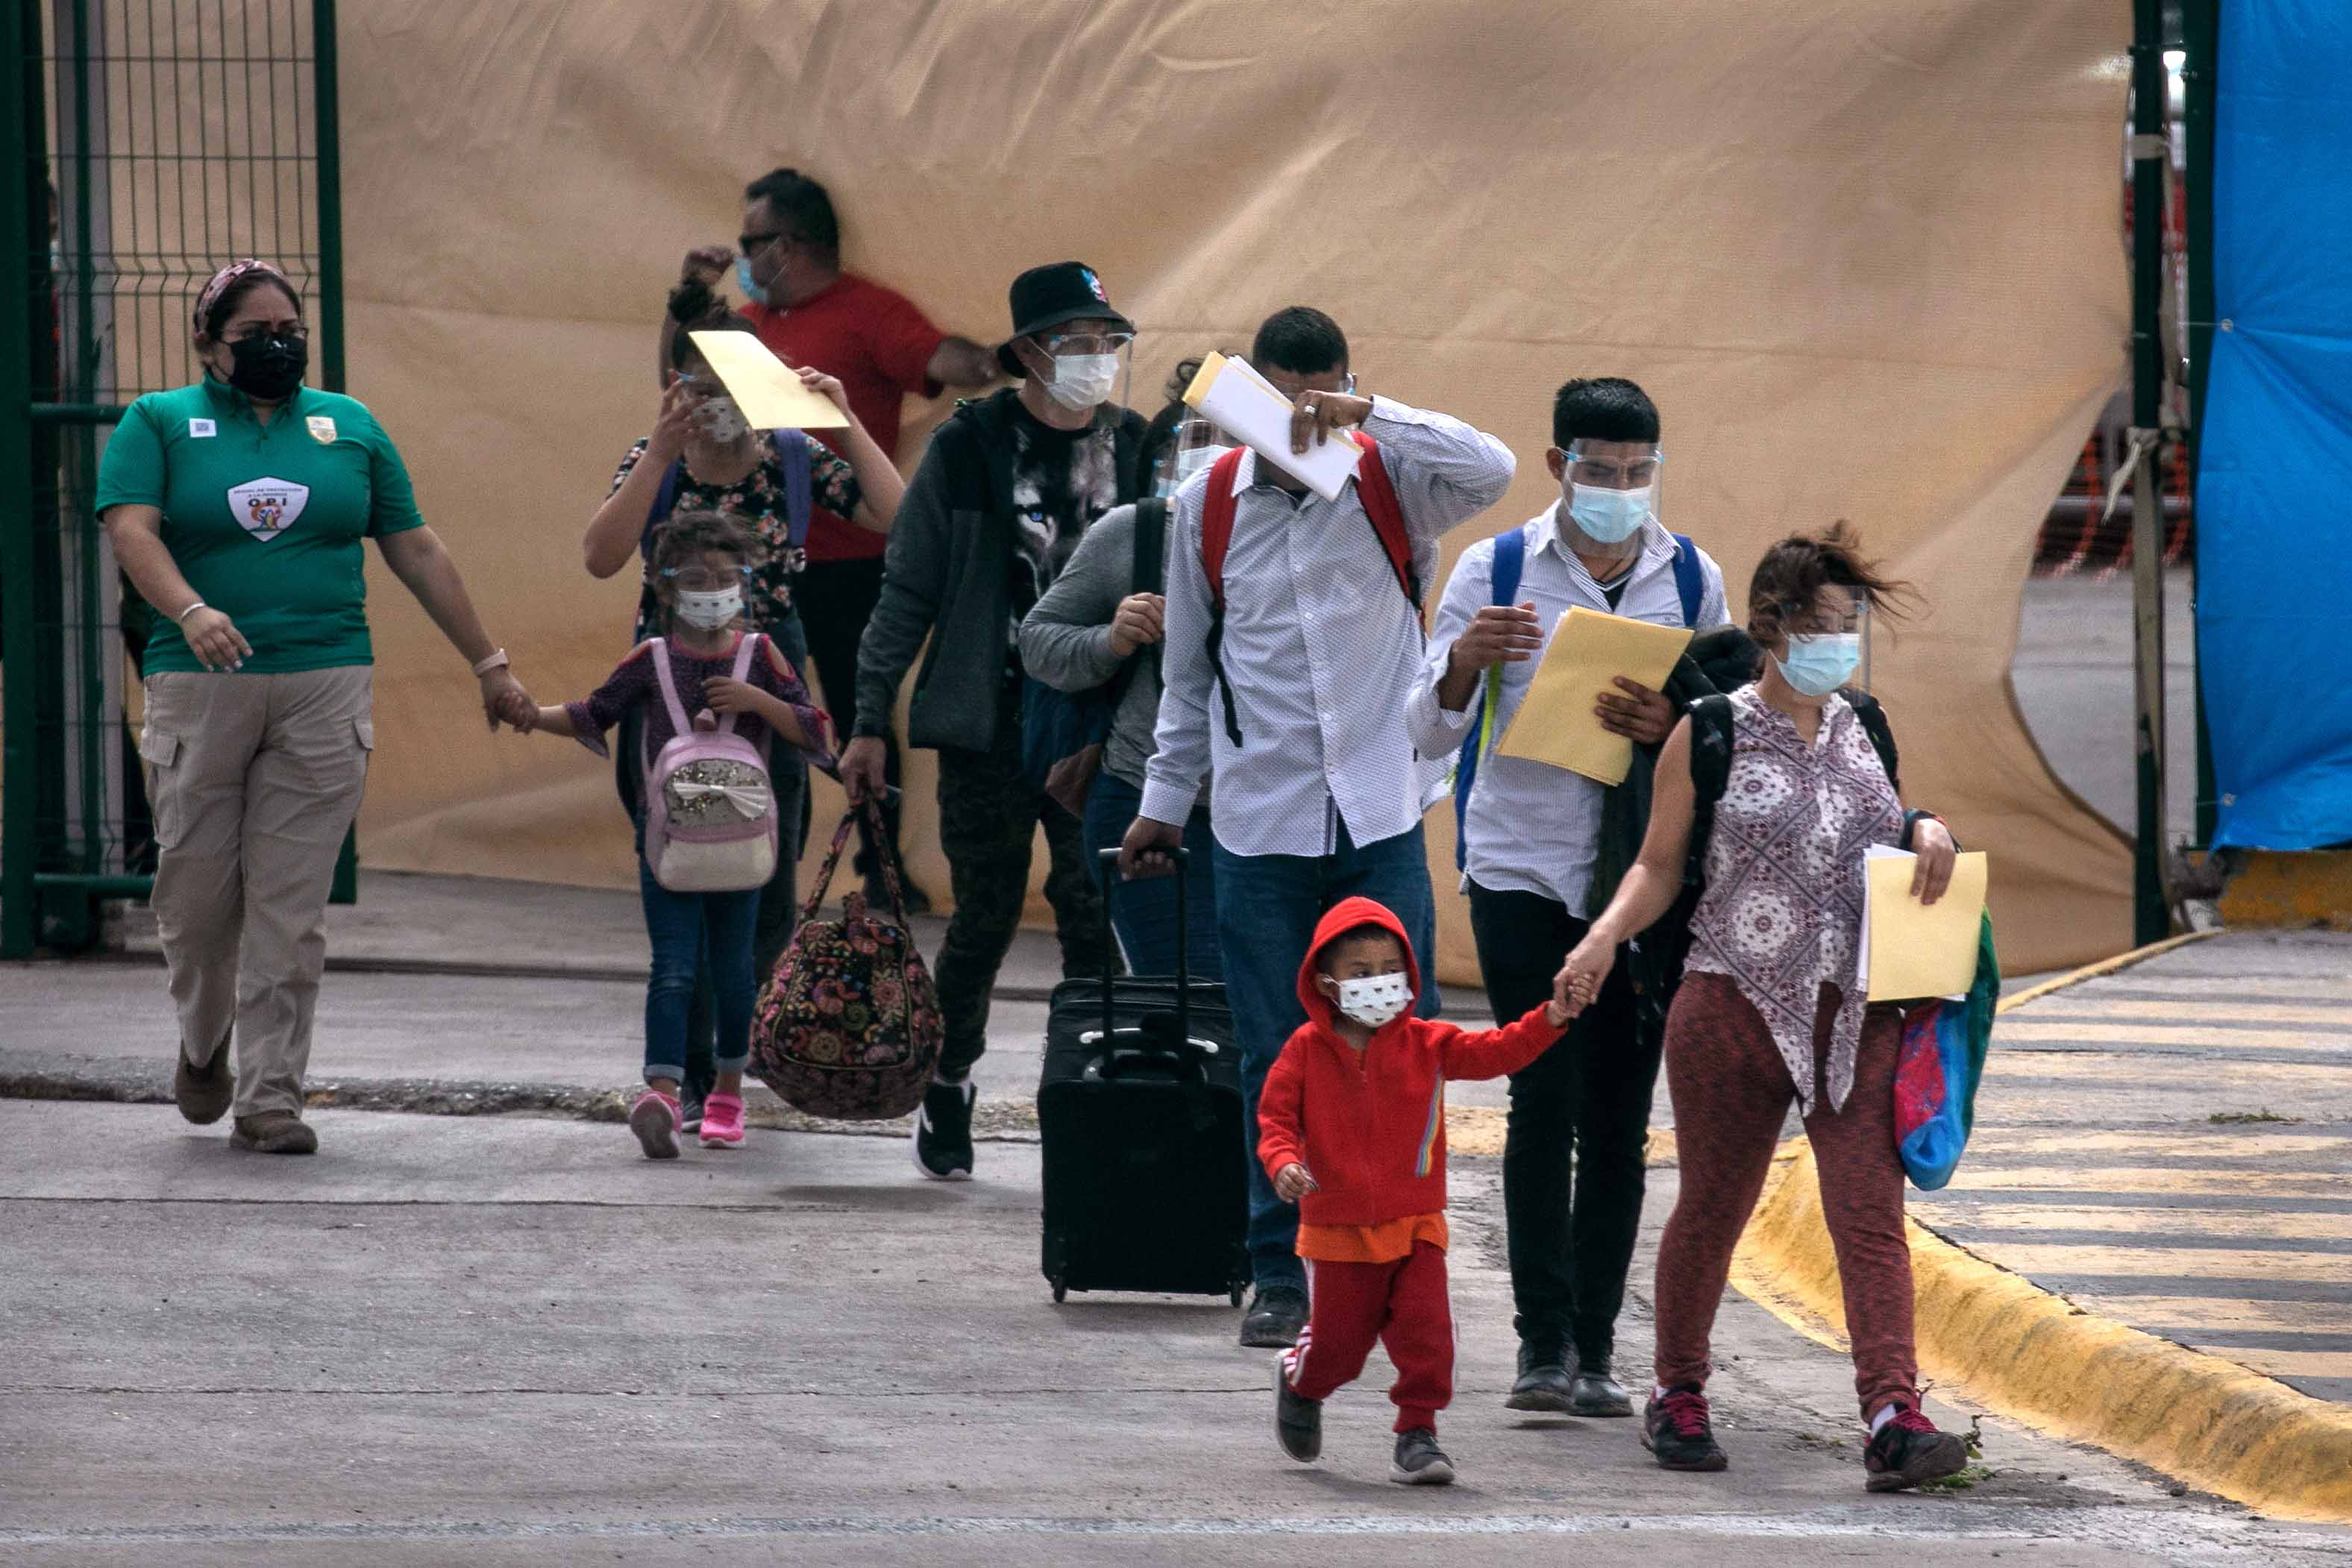 Asylum seekers walk to the U.S.-Mexico border as a group of at least 25 immigrants were allowed to travel from a migrant camp in Mexico into the United States.